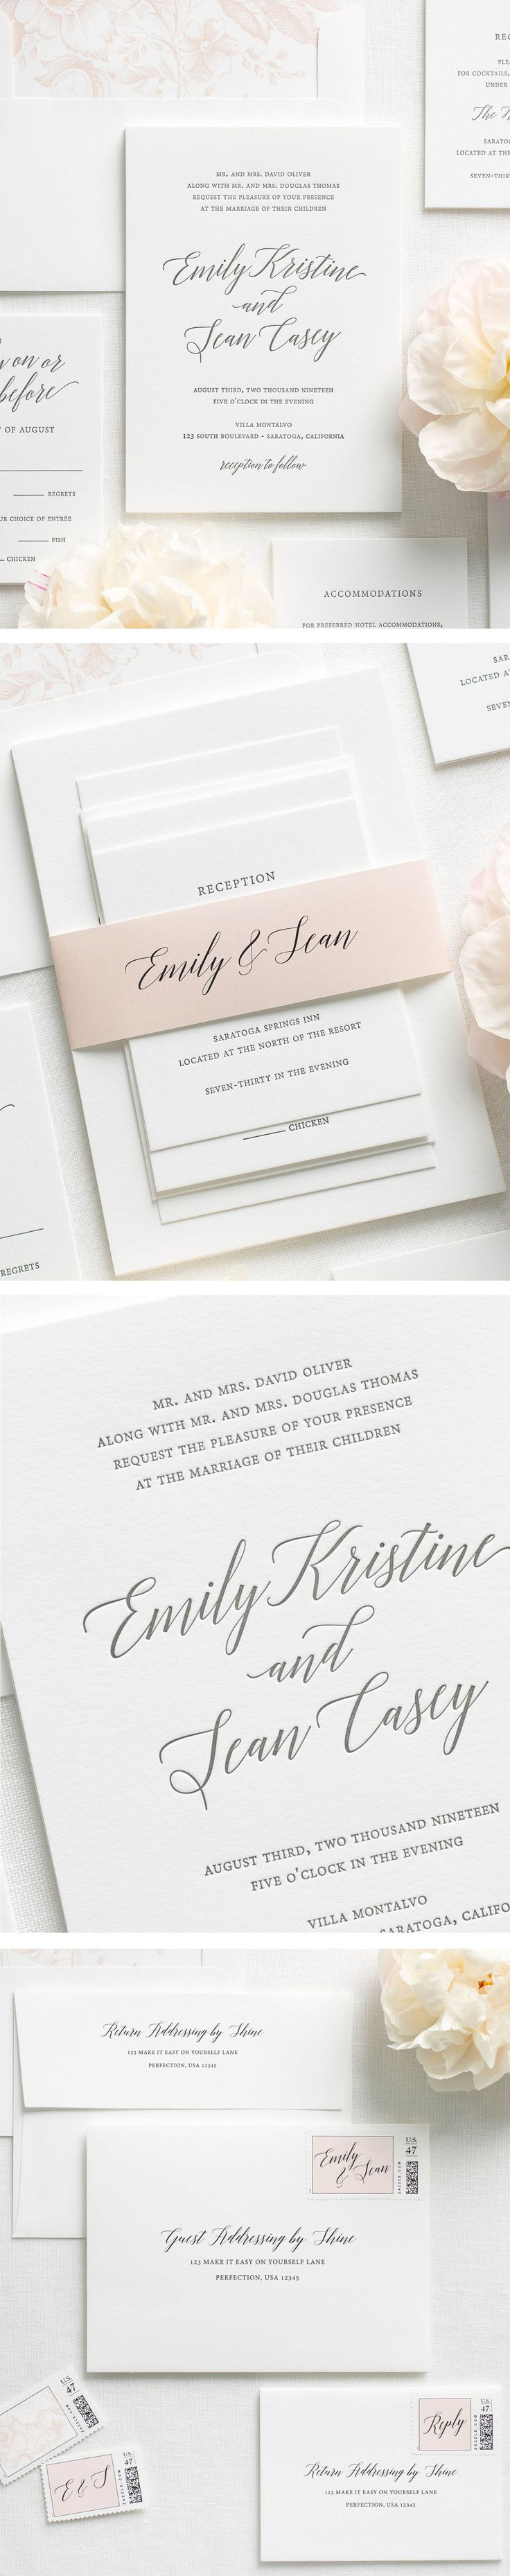 1080 best exceptional wedding invites images on pinterest